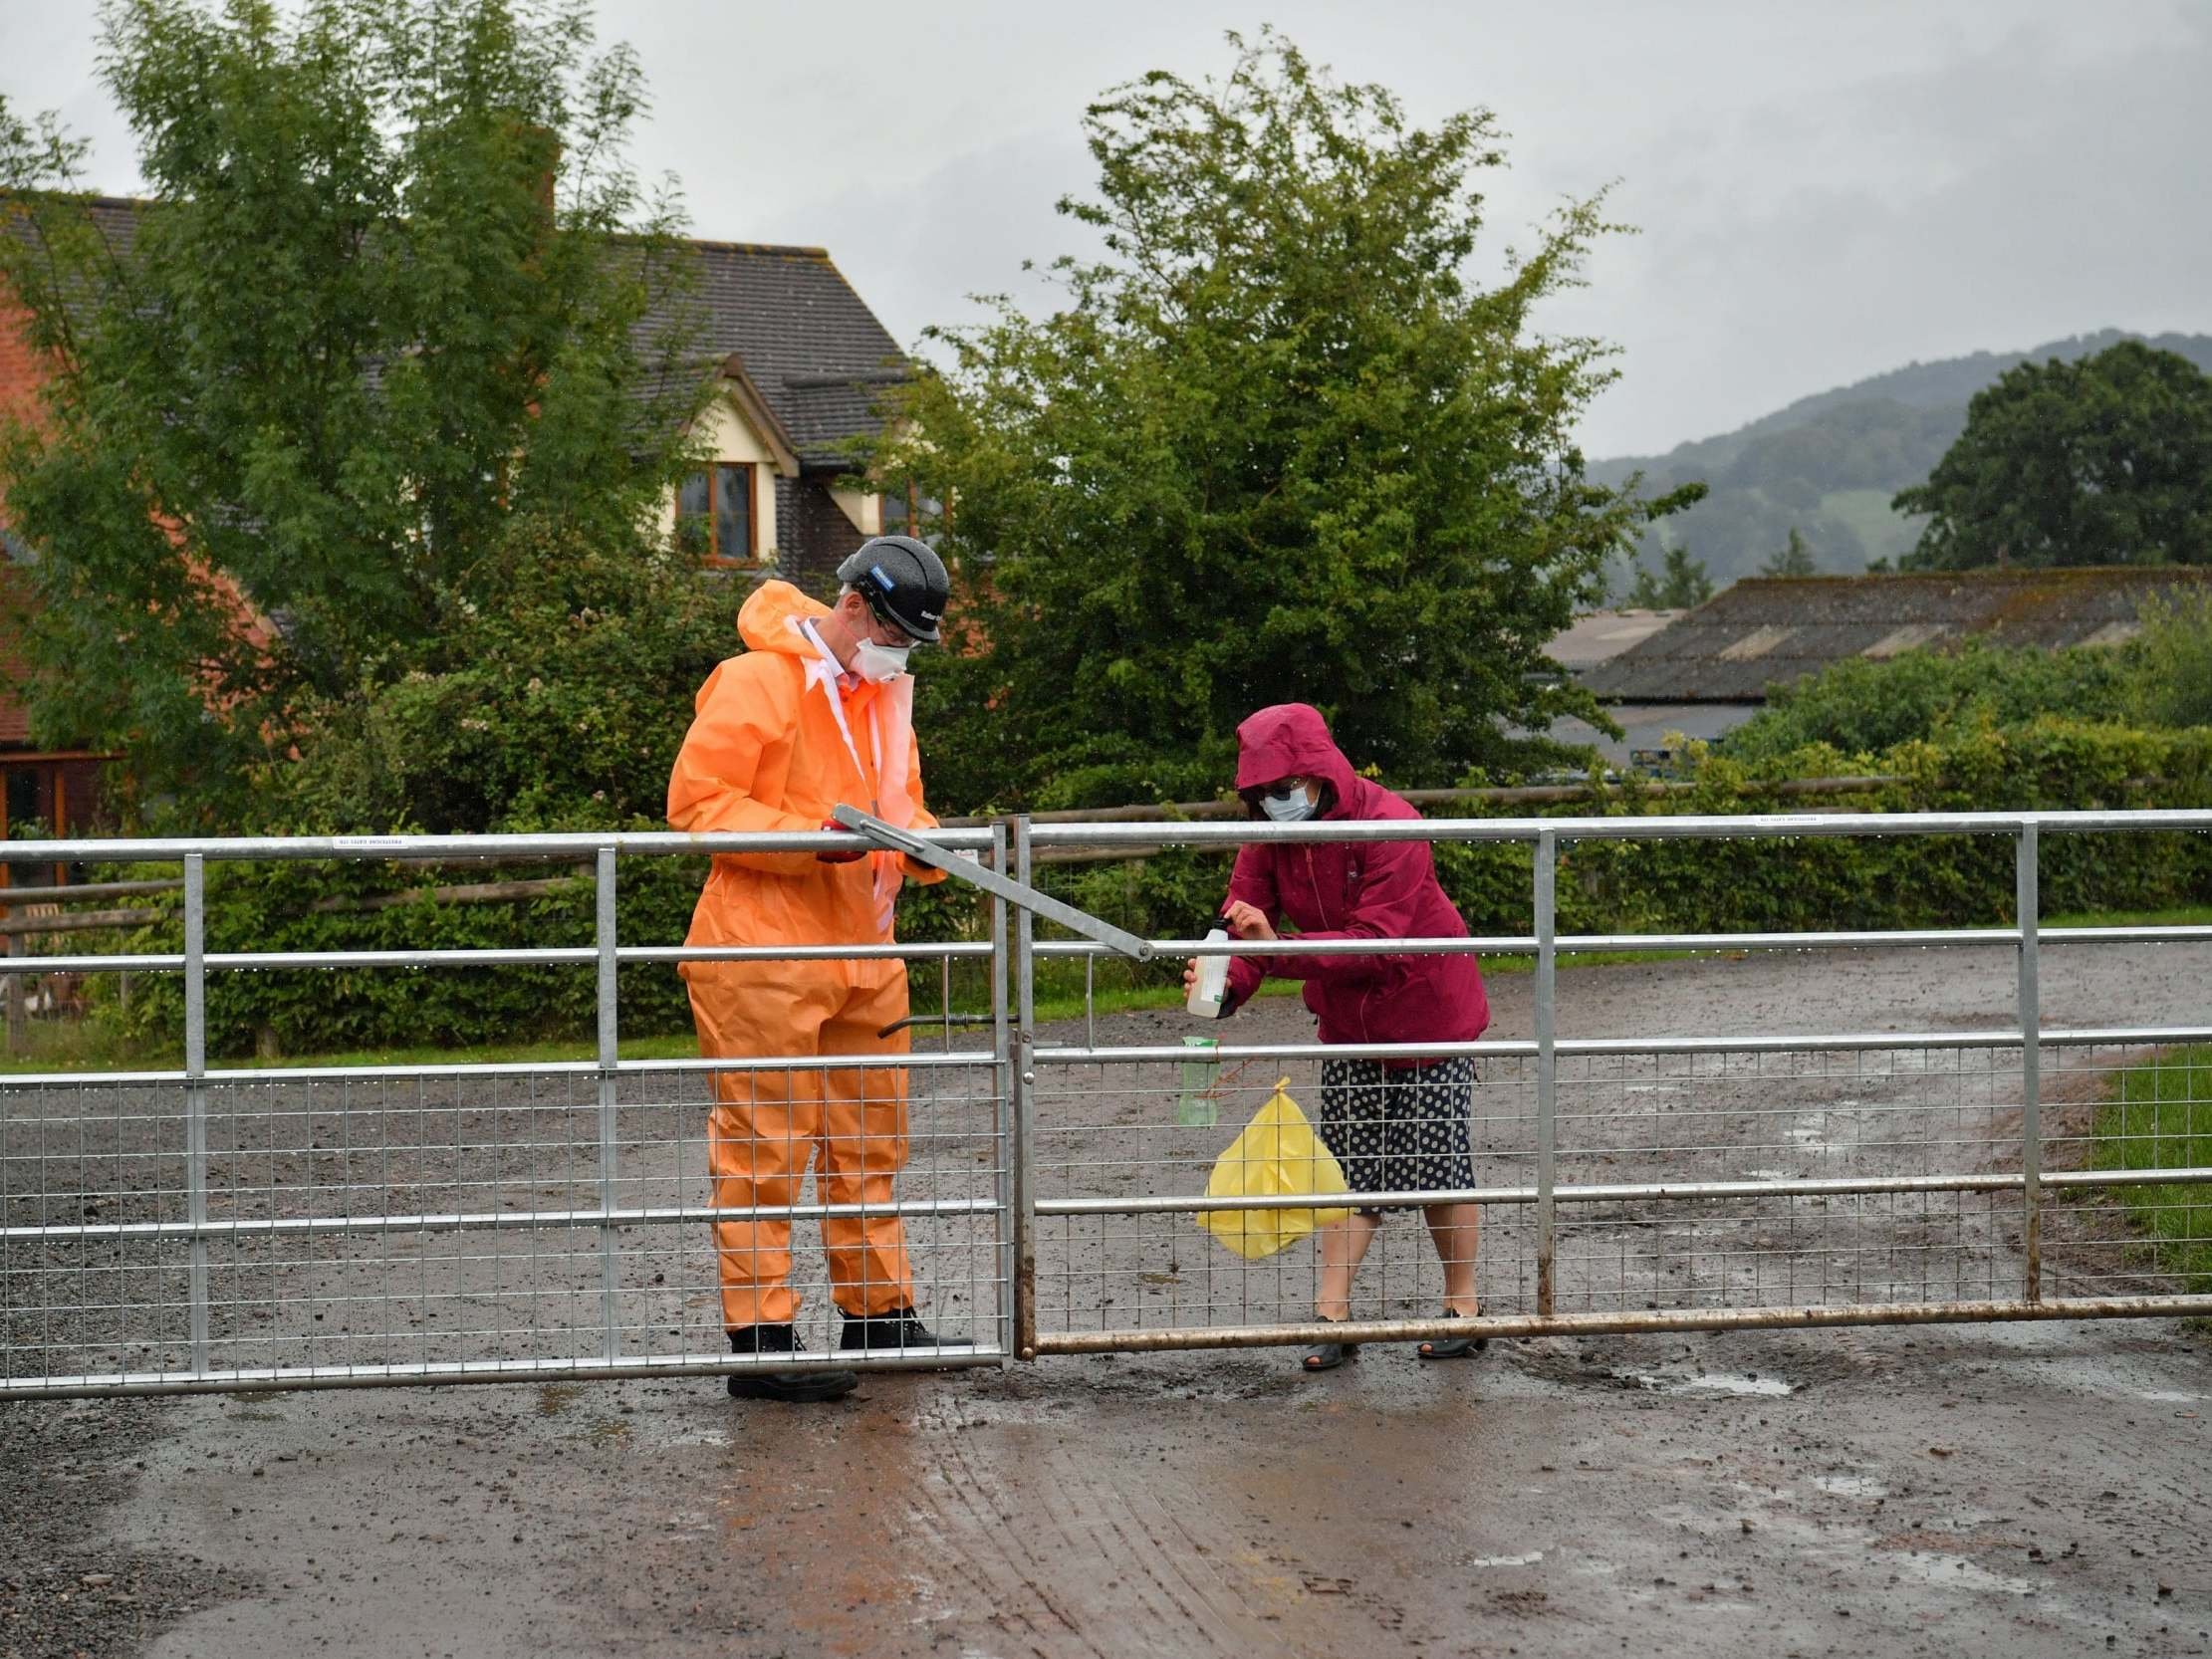 Three workers flee quarantined Herefordshire farm where 74 tested positive for coronavirus